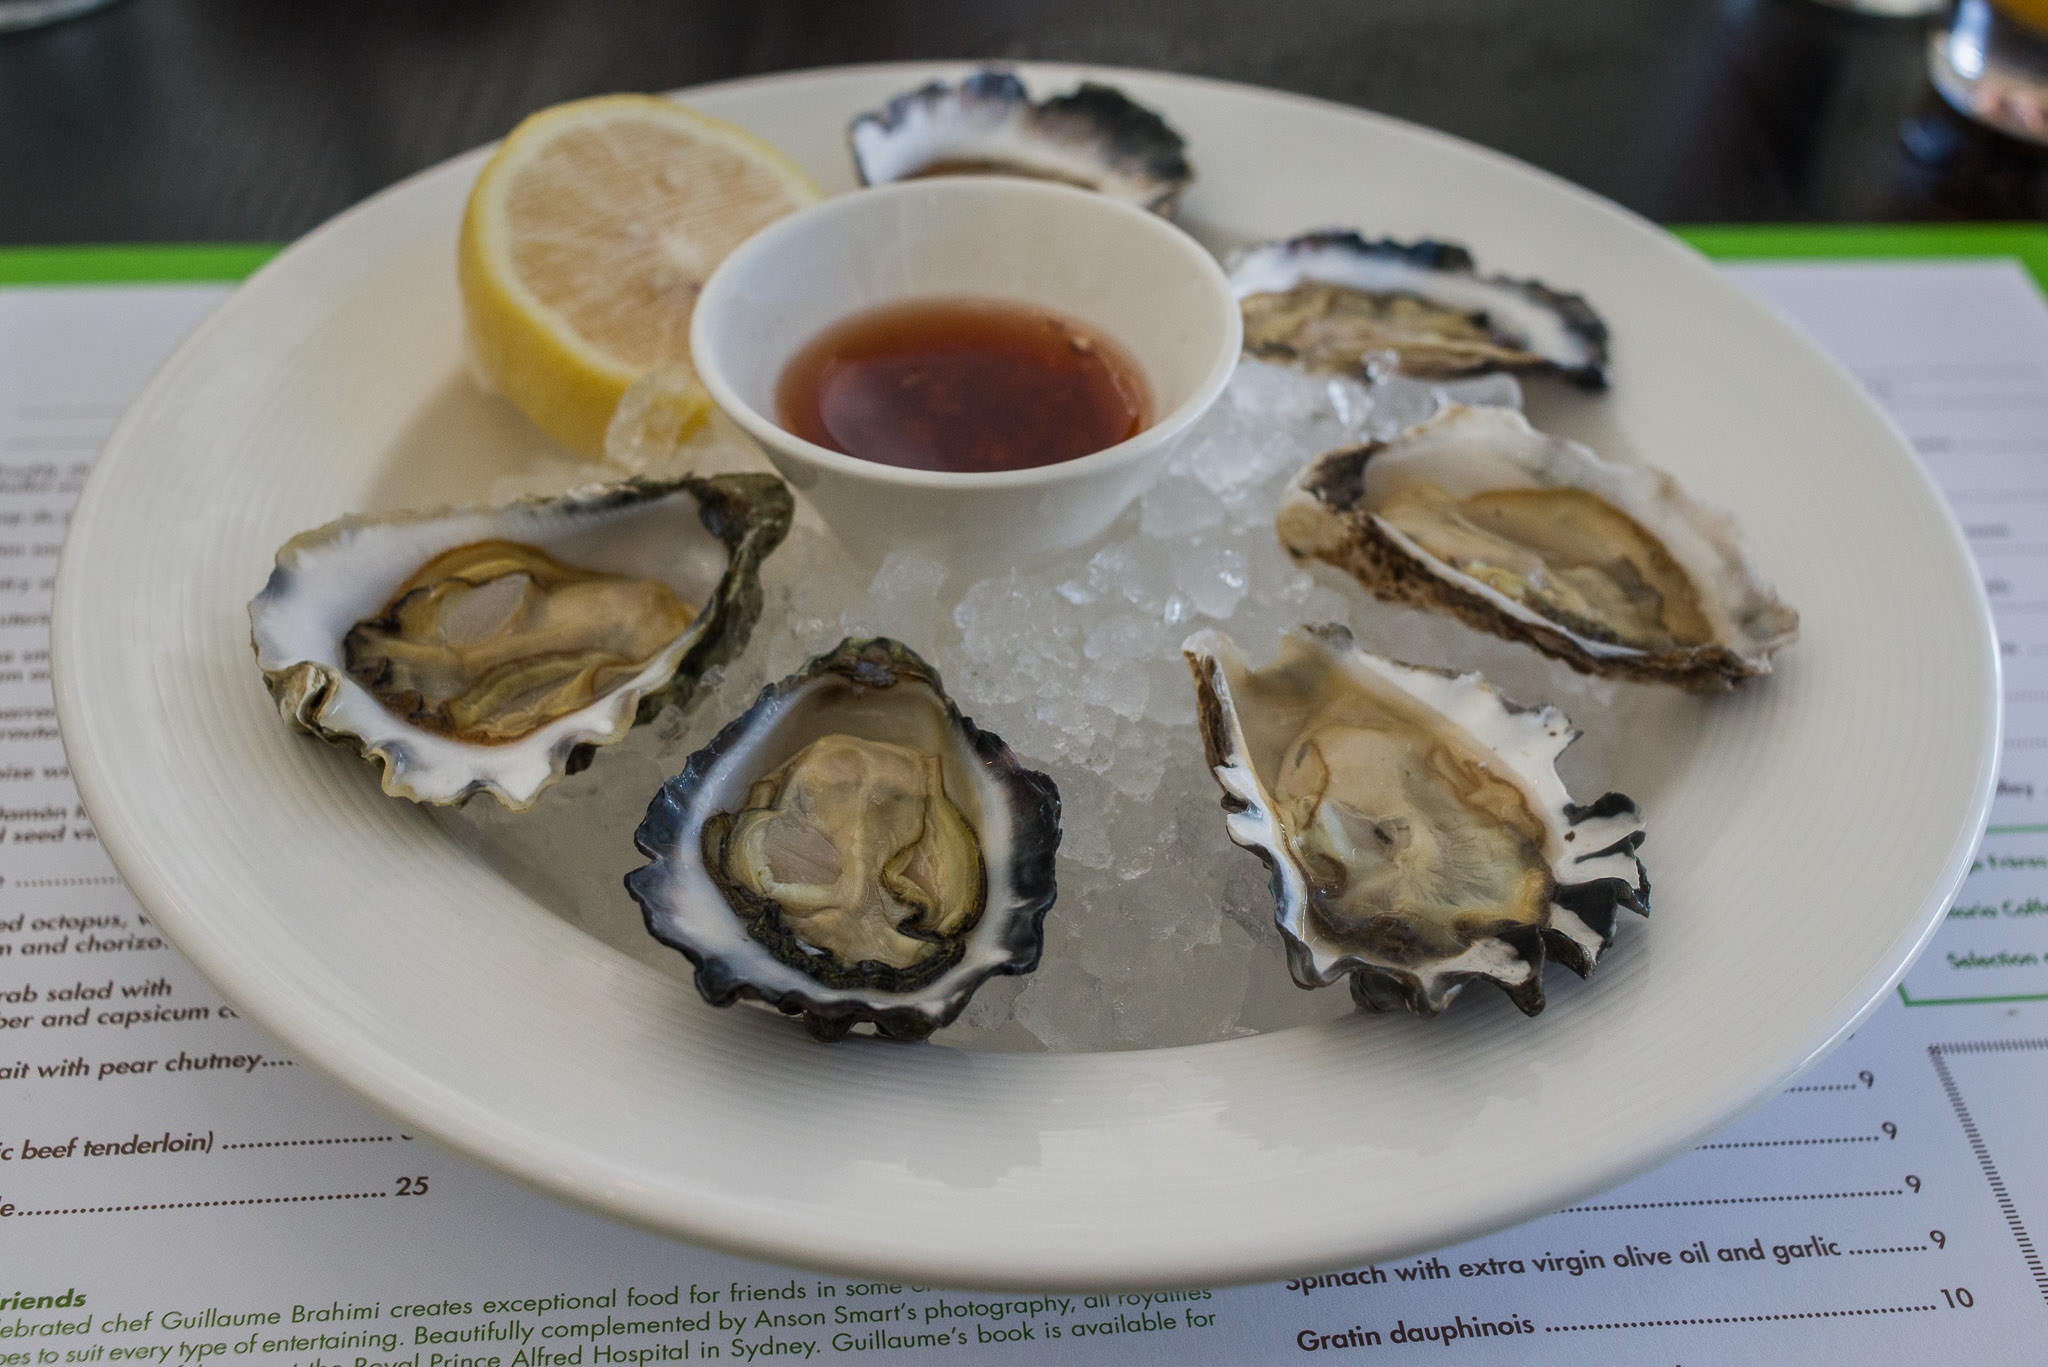 Freshly shucked oysters with shallot and red wine vinegar (AU$21 half dozen)